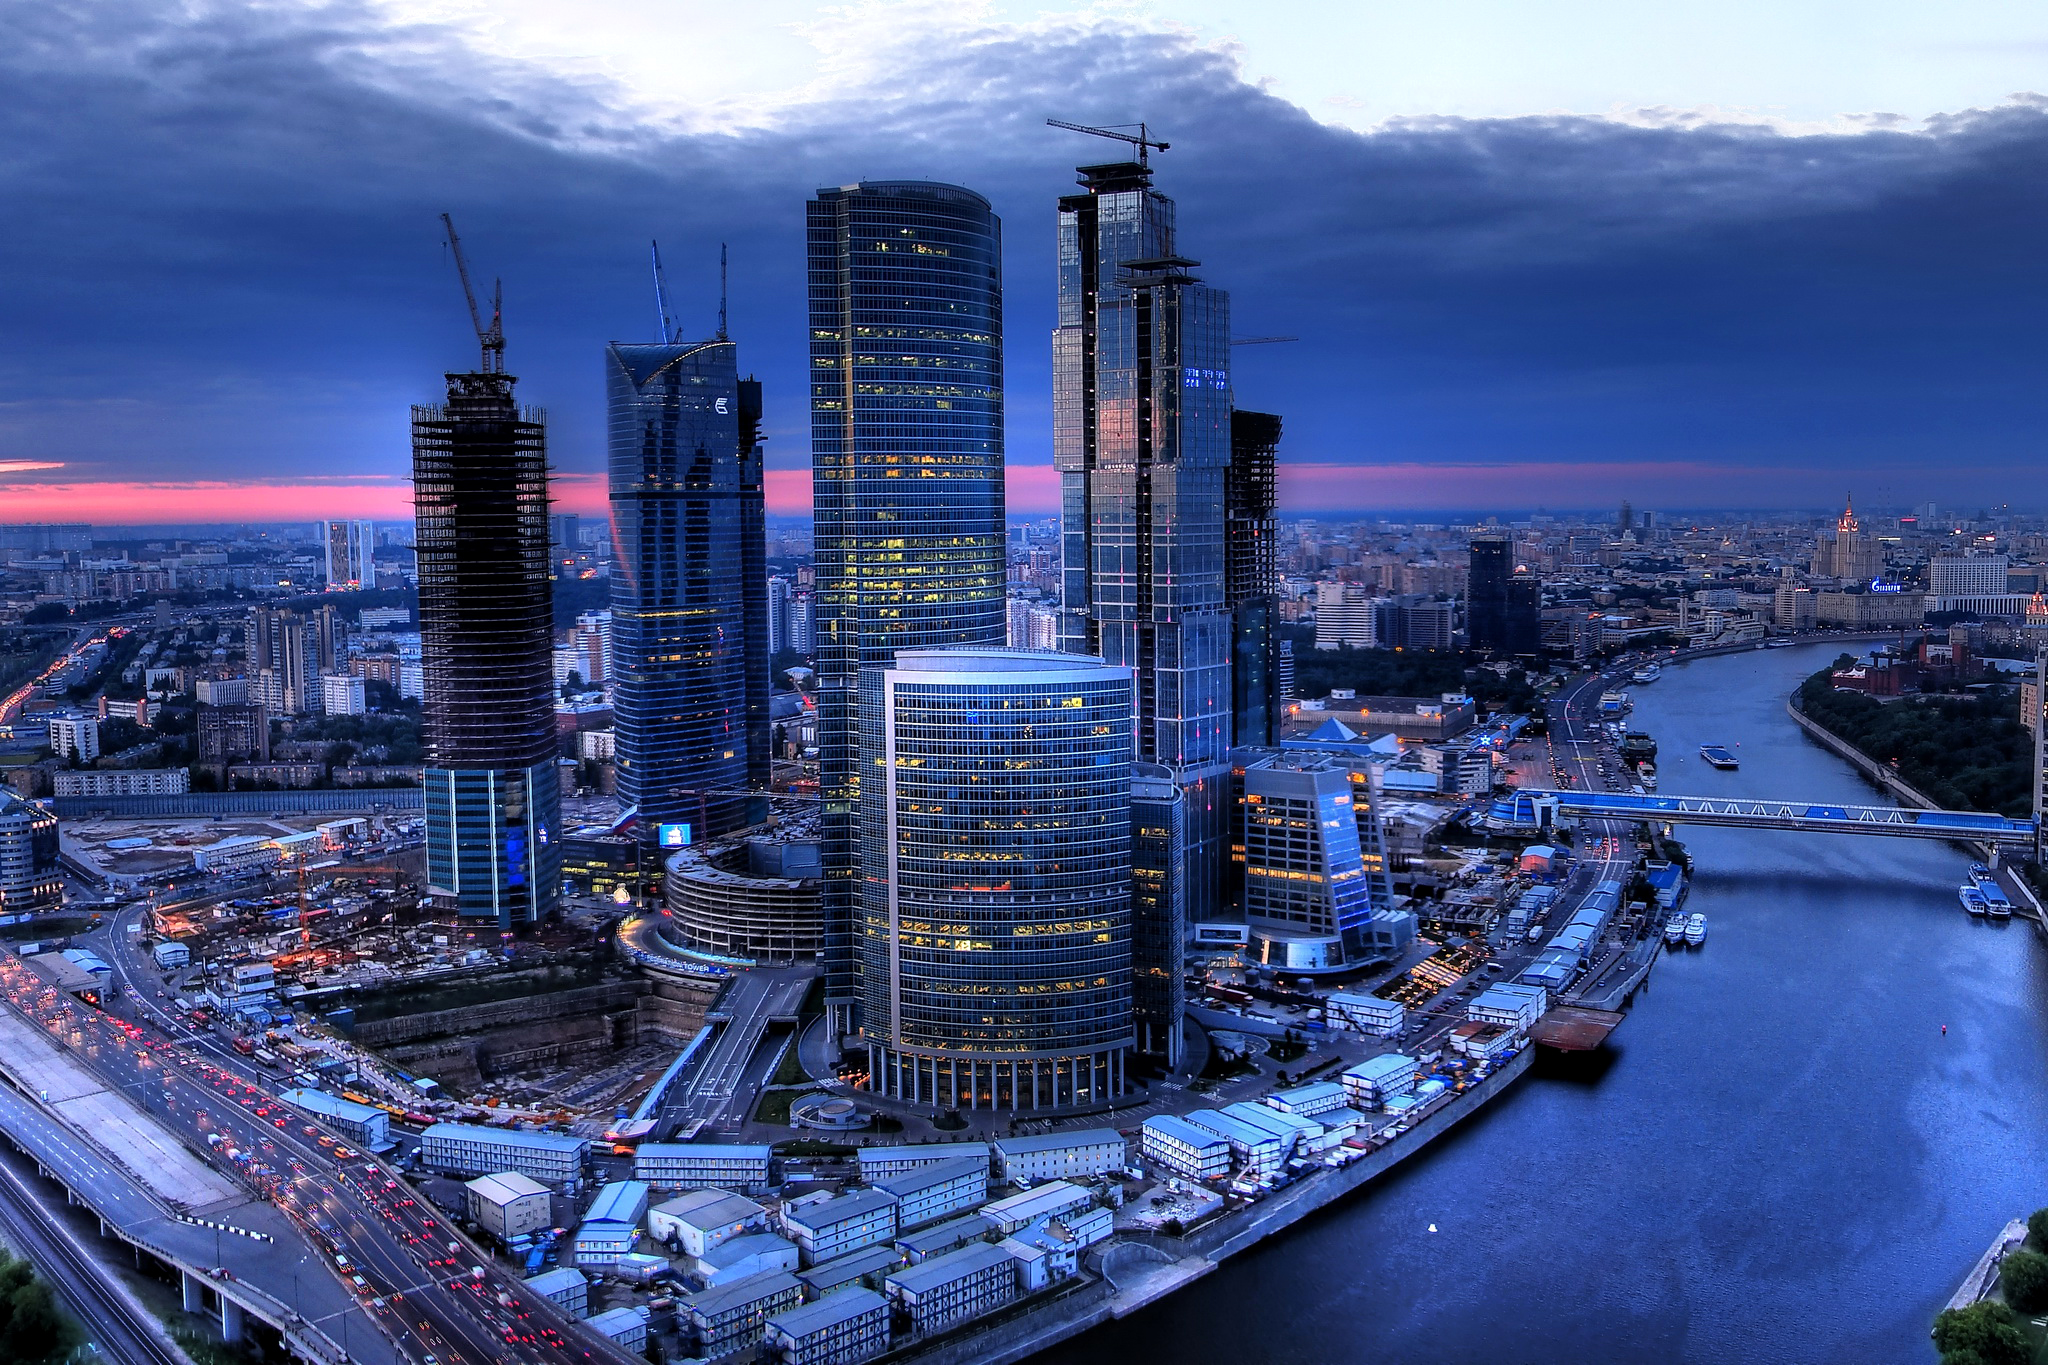 City Skyline Wallpaper Iphone Moscow Russia Cityscape Full Hd Wallpaper And Background